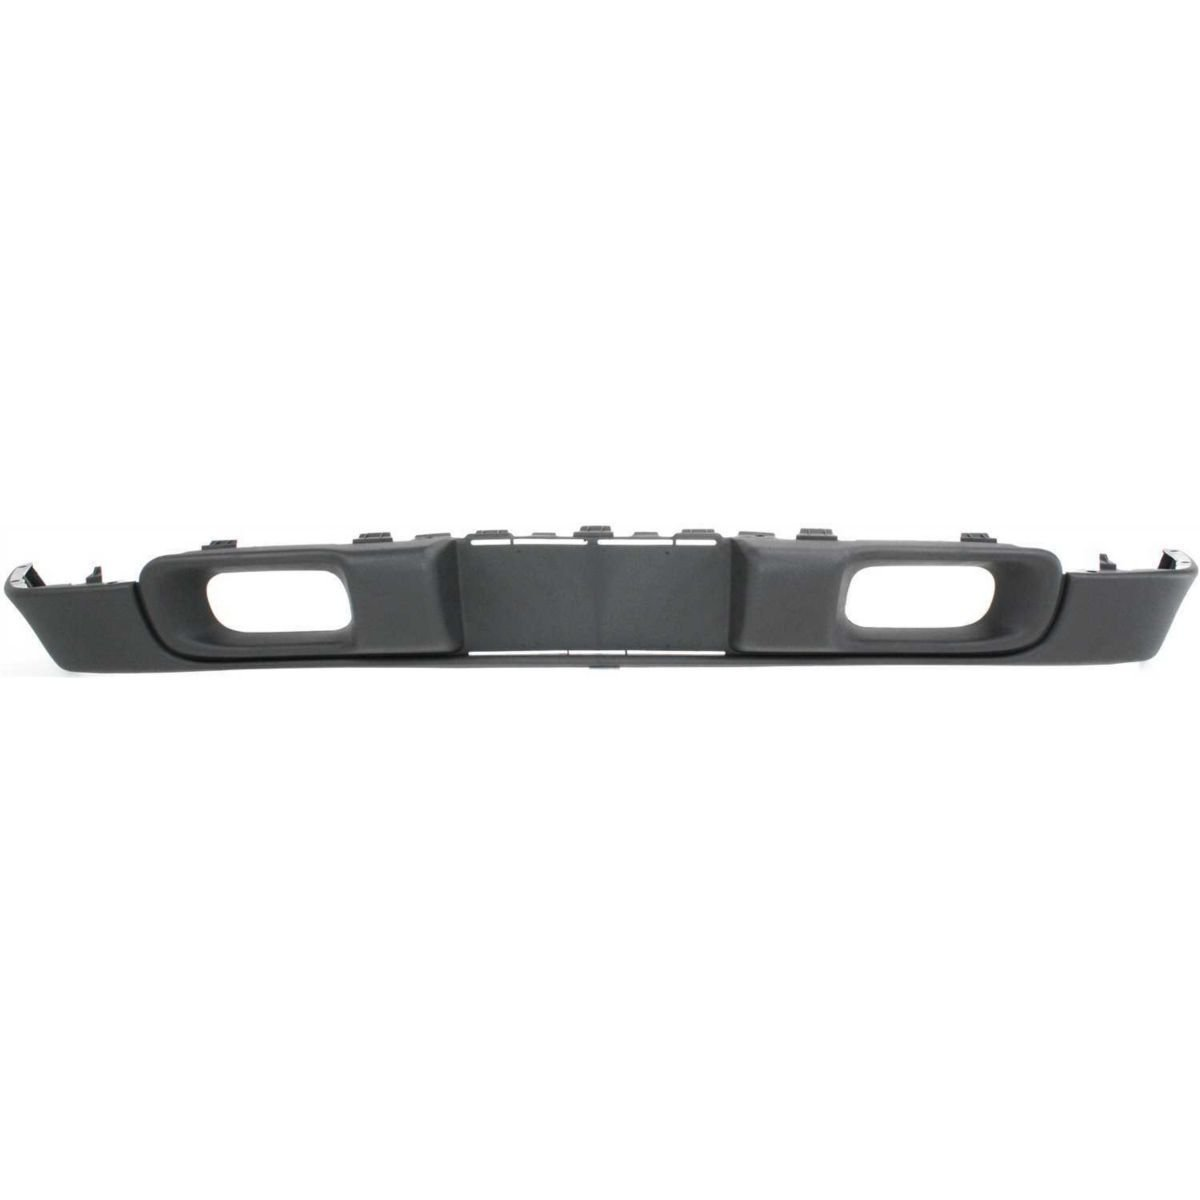 Diften 199-A0009-X01 New Air Dam Deflector Valance Front Primered S10 Pickup Chevy GM1092164 88967926